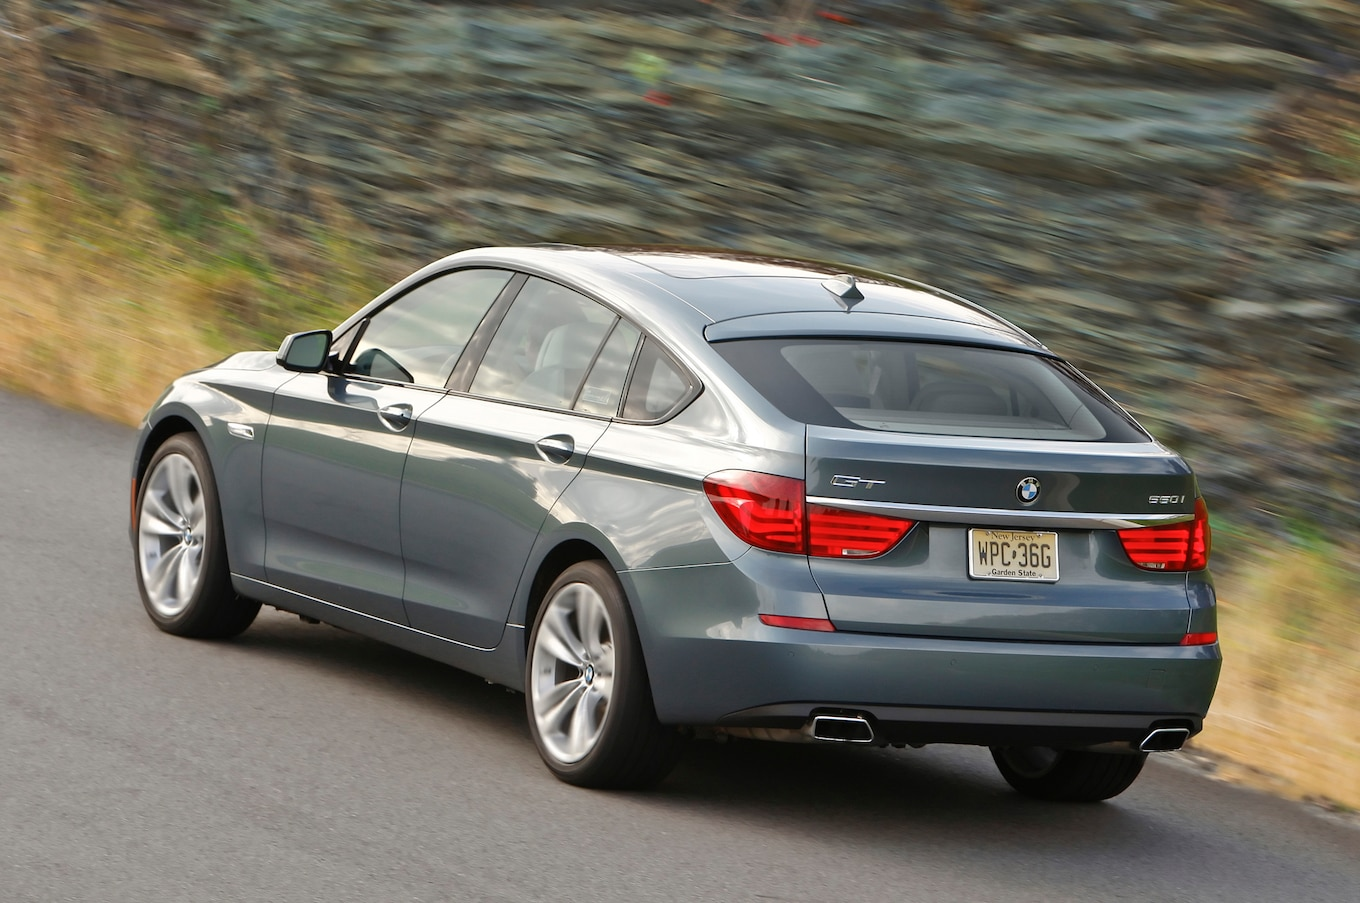 Bmw 5 Series Gran Turismo Review 2013 Bmw 5 Series Reviews And Rating Motortrend